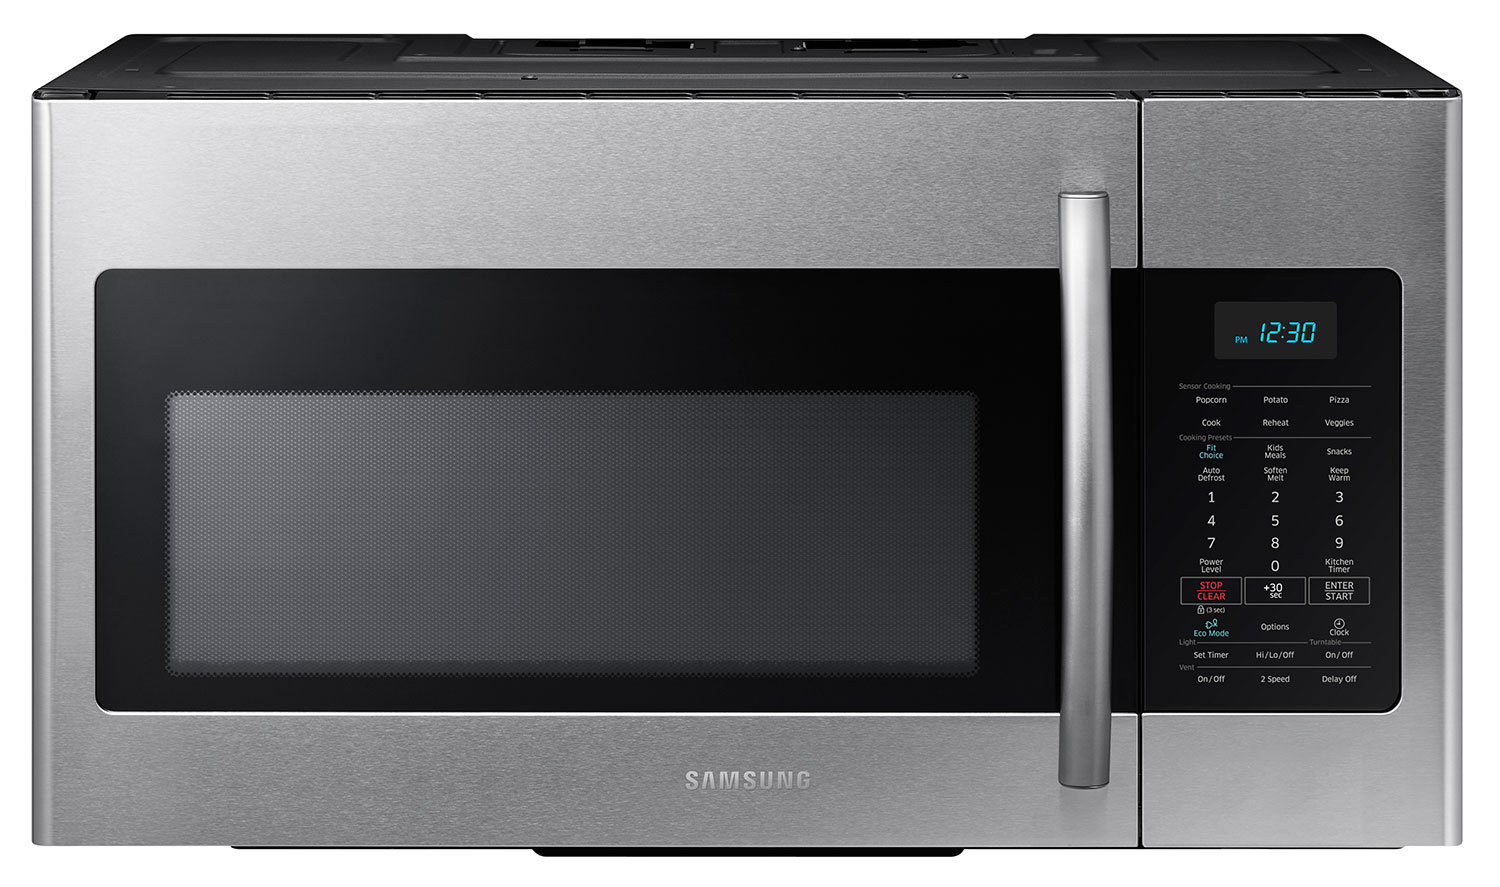 Electrolux microwave oven price malaysia